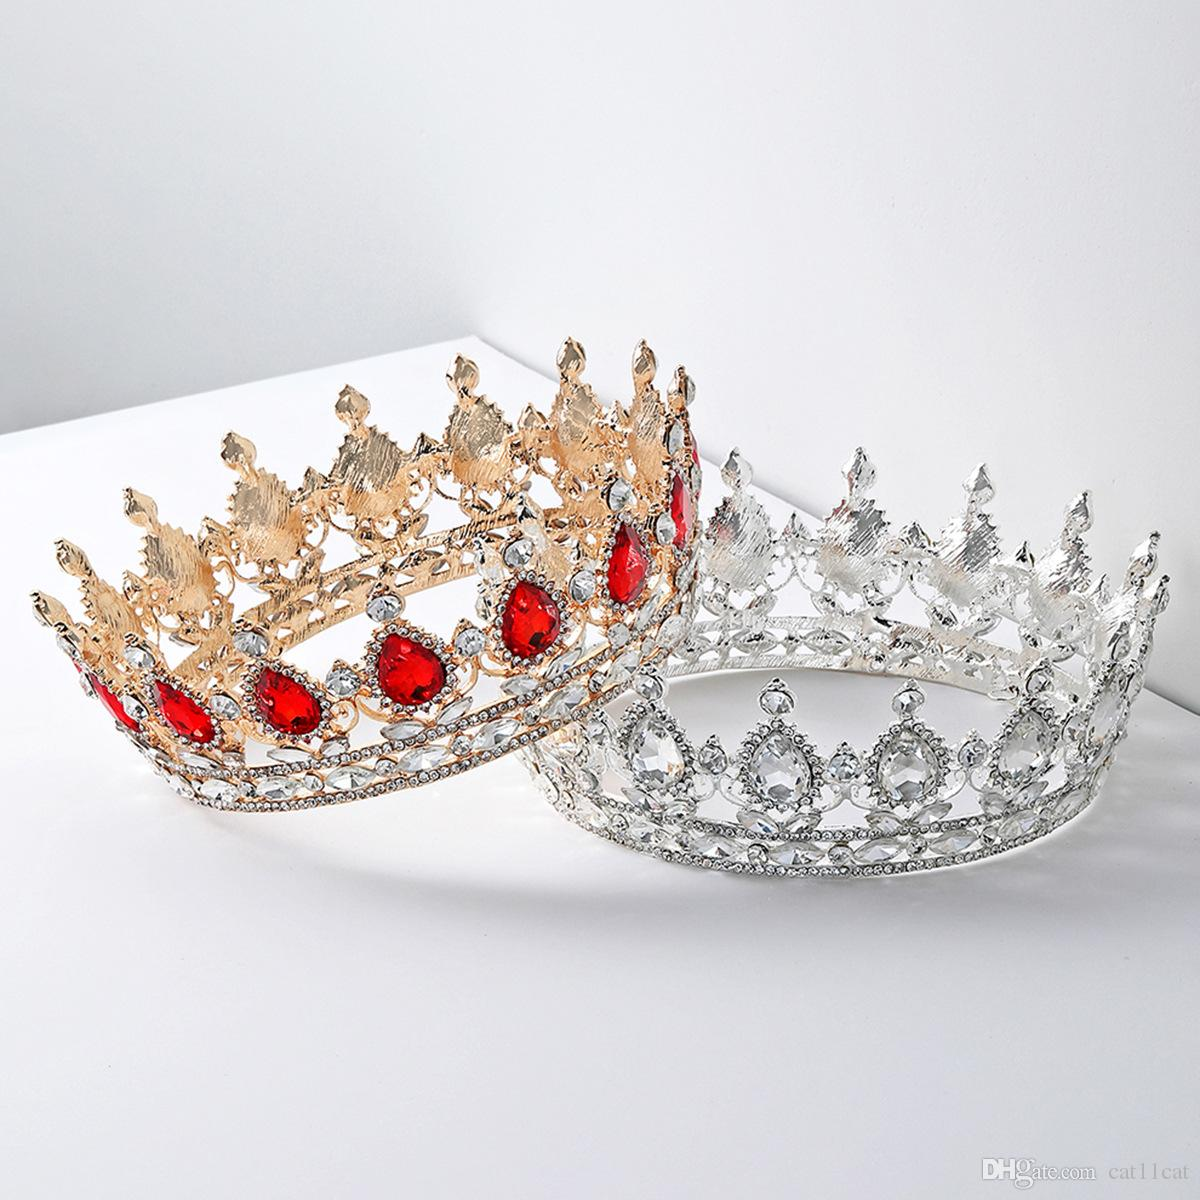 Baroque Queen King Bride Tiara Crown For Women Headdress Prom Bridal Wedding Tiaras and Crowns Hair Jewelry Accessories